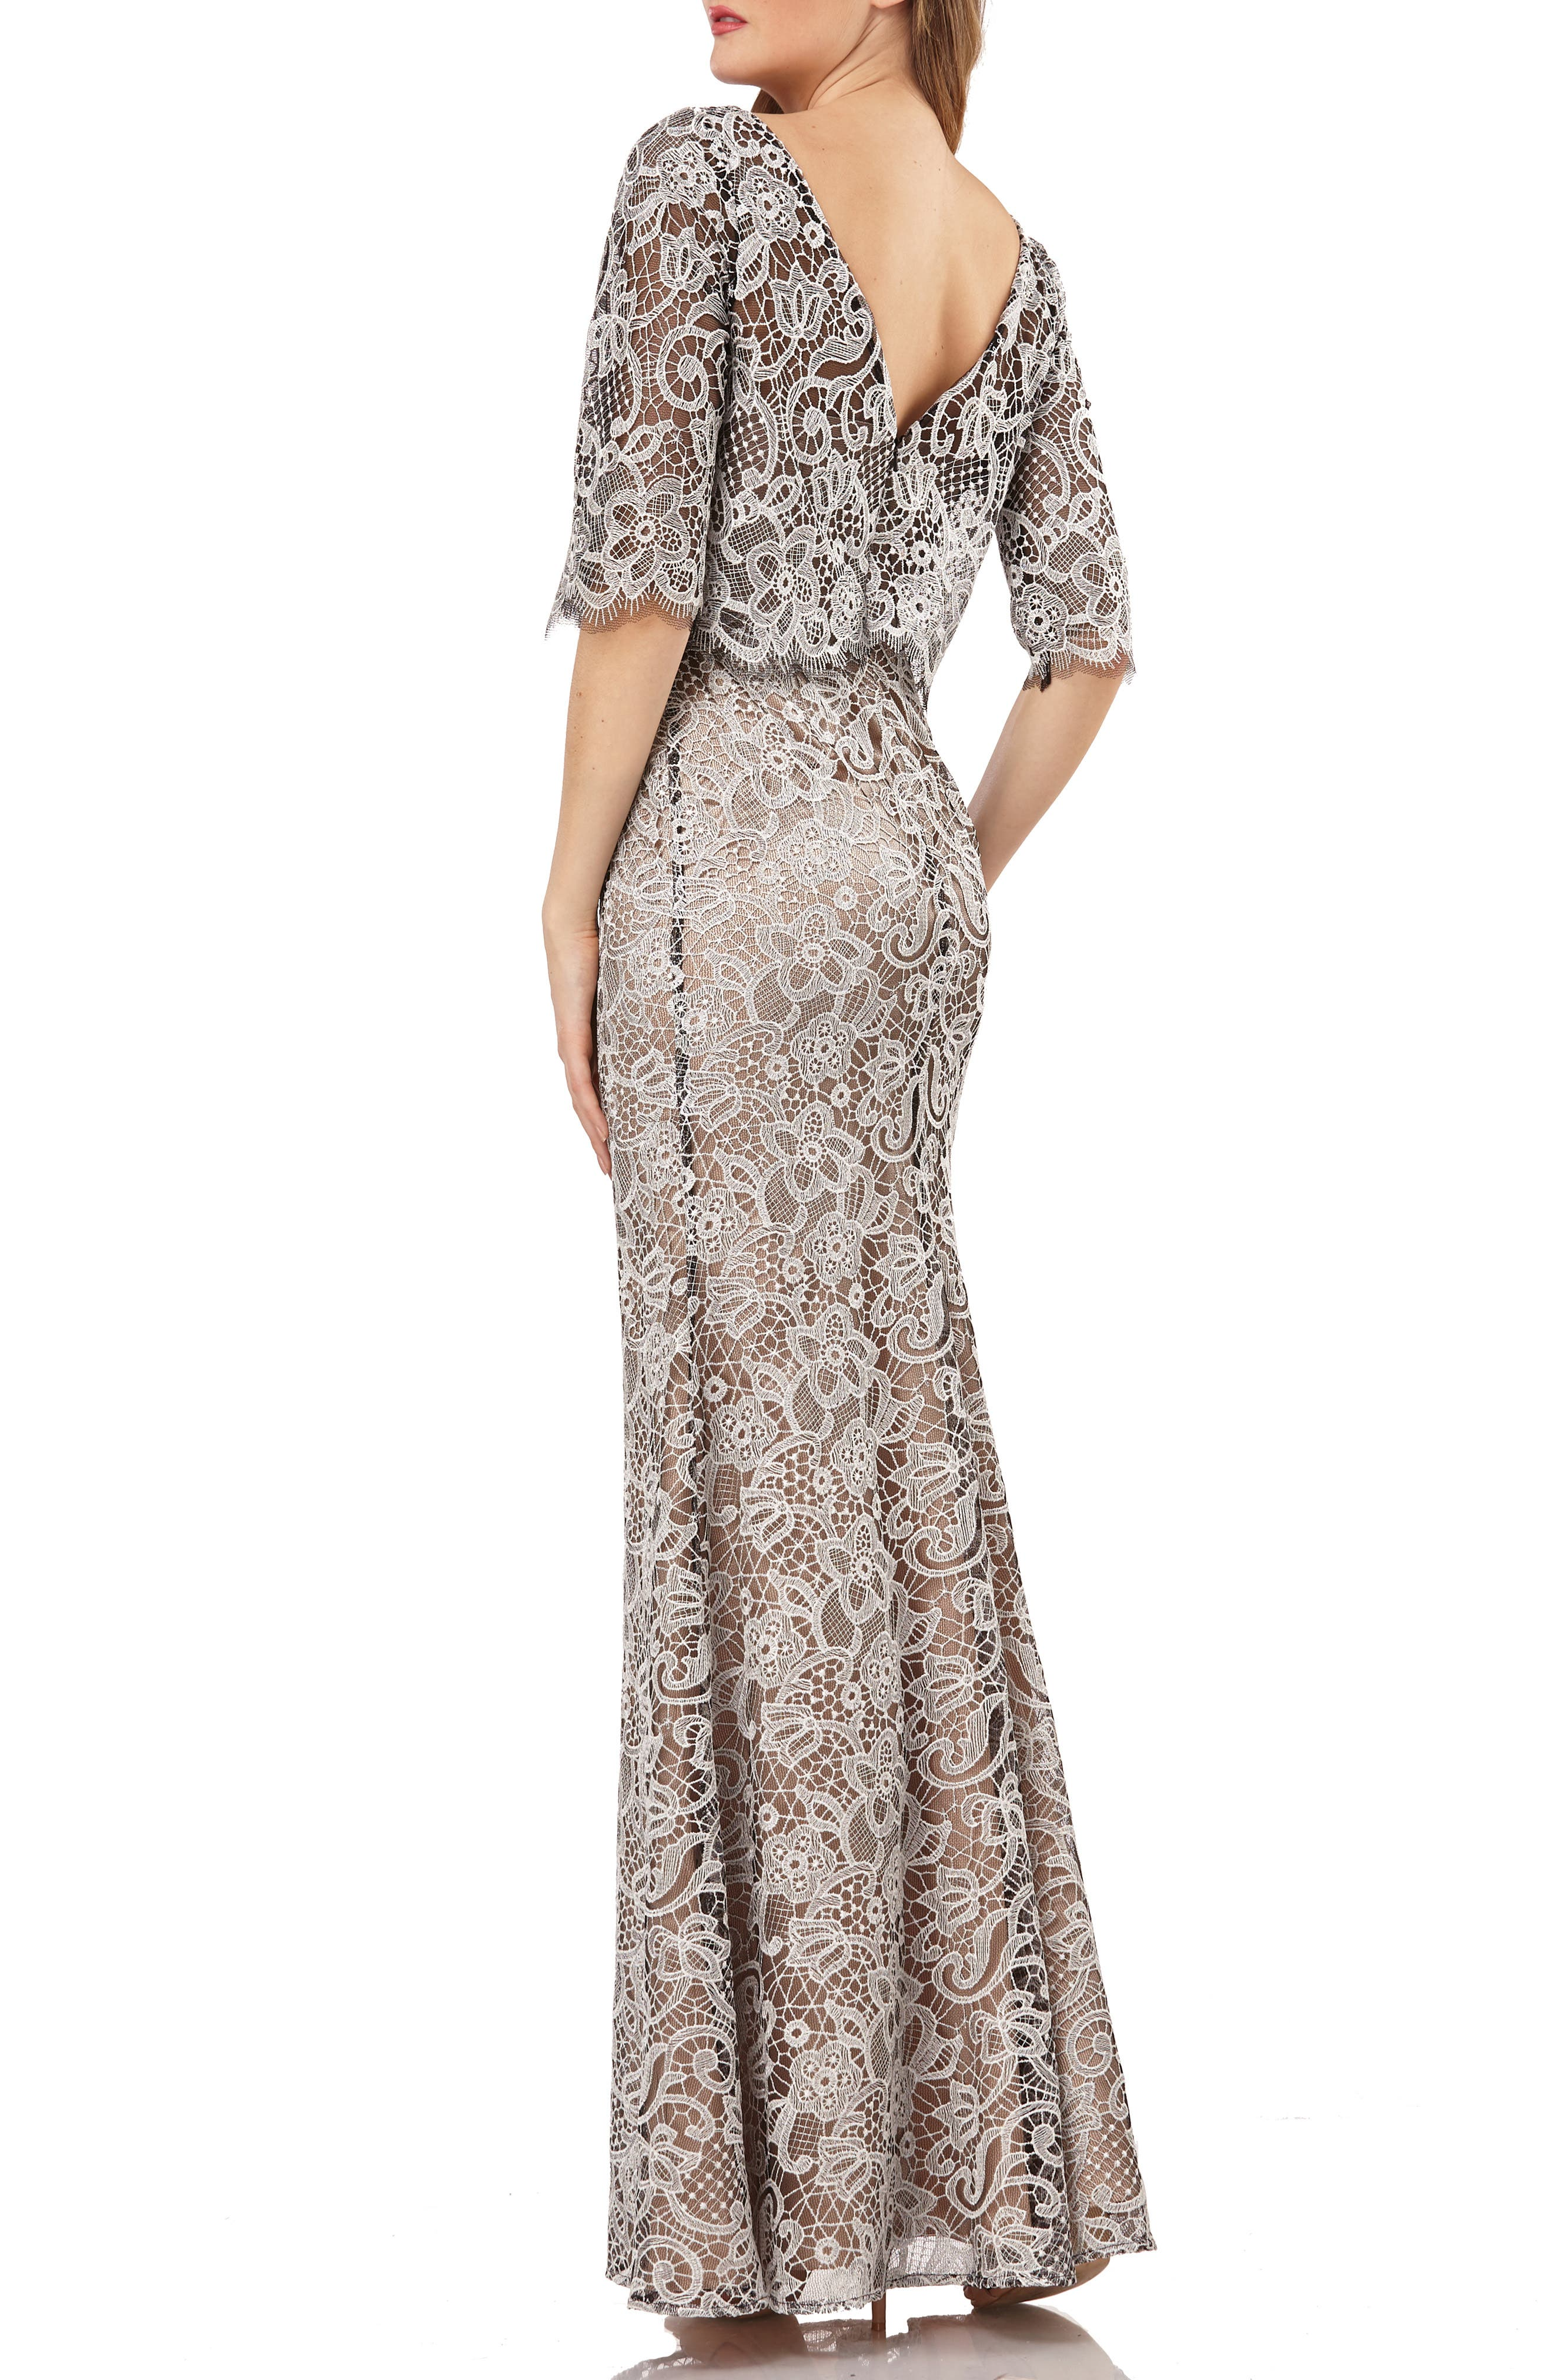 JS COLLECTIONS,                             JS Collection Embroidered Lace Scallop Trim Evening Dress,                             Alternate thumbnail 2, color,                             BLACK/ IVORY